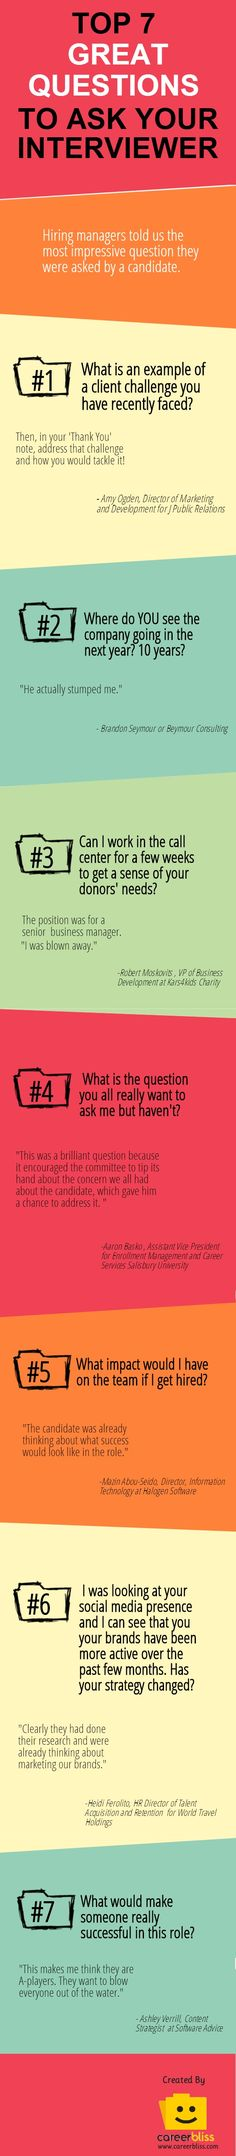 7 Great Questions to Ask